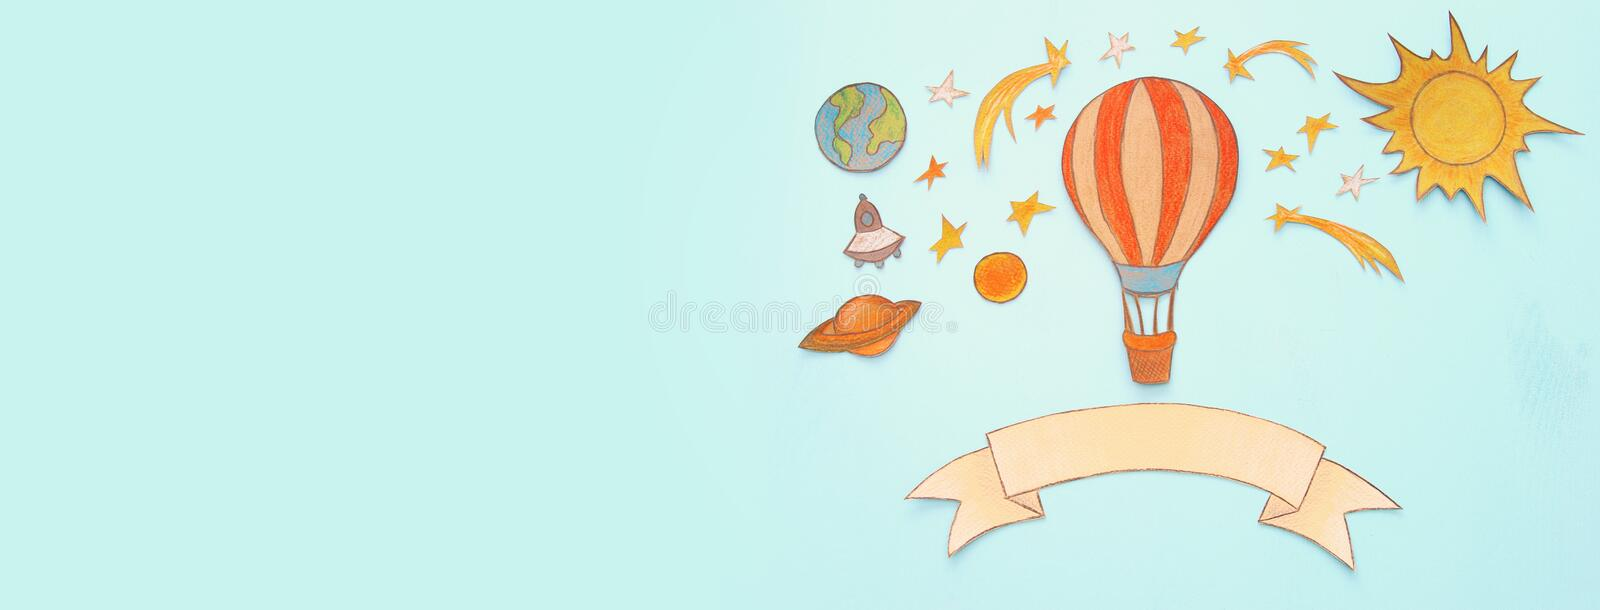 Banner of Hot air balloon, space elements shapes cut from paper and painted over wooden blue background. royalty free stock photography